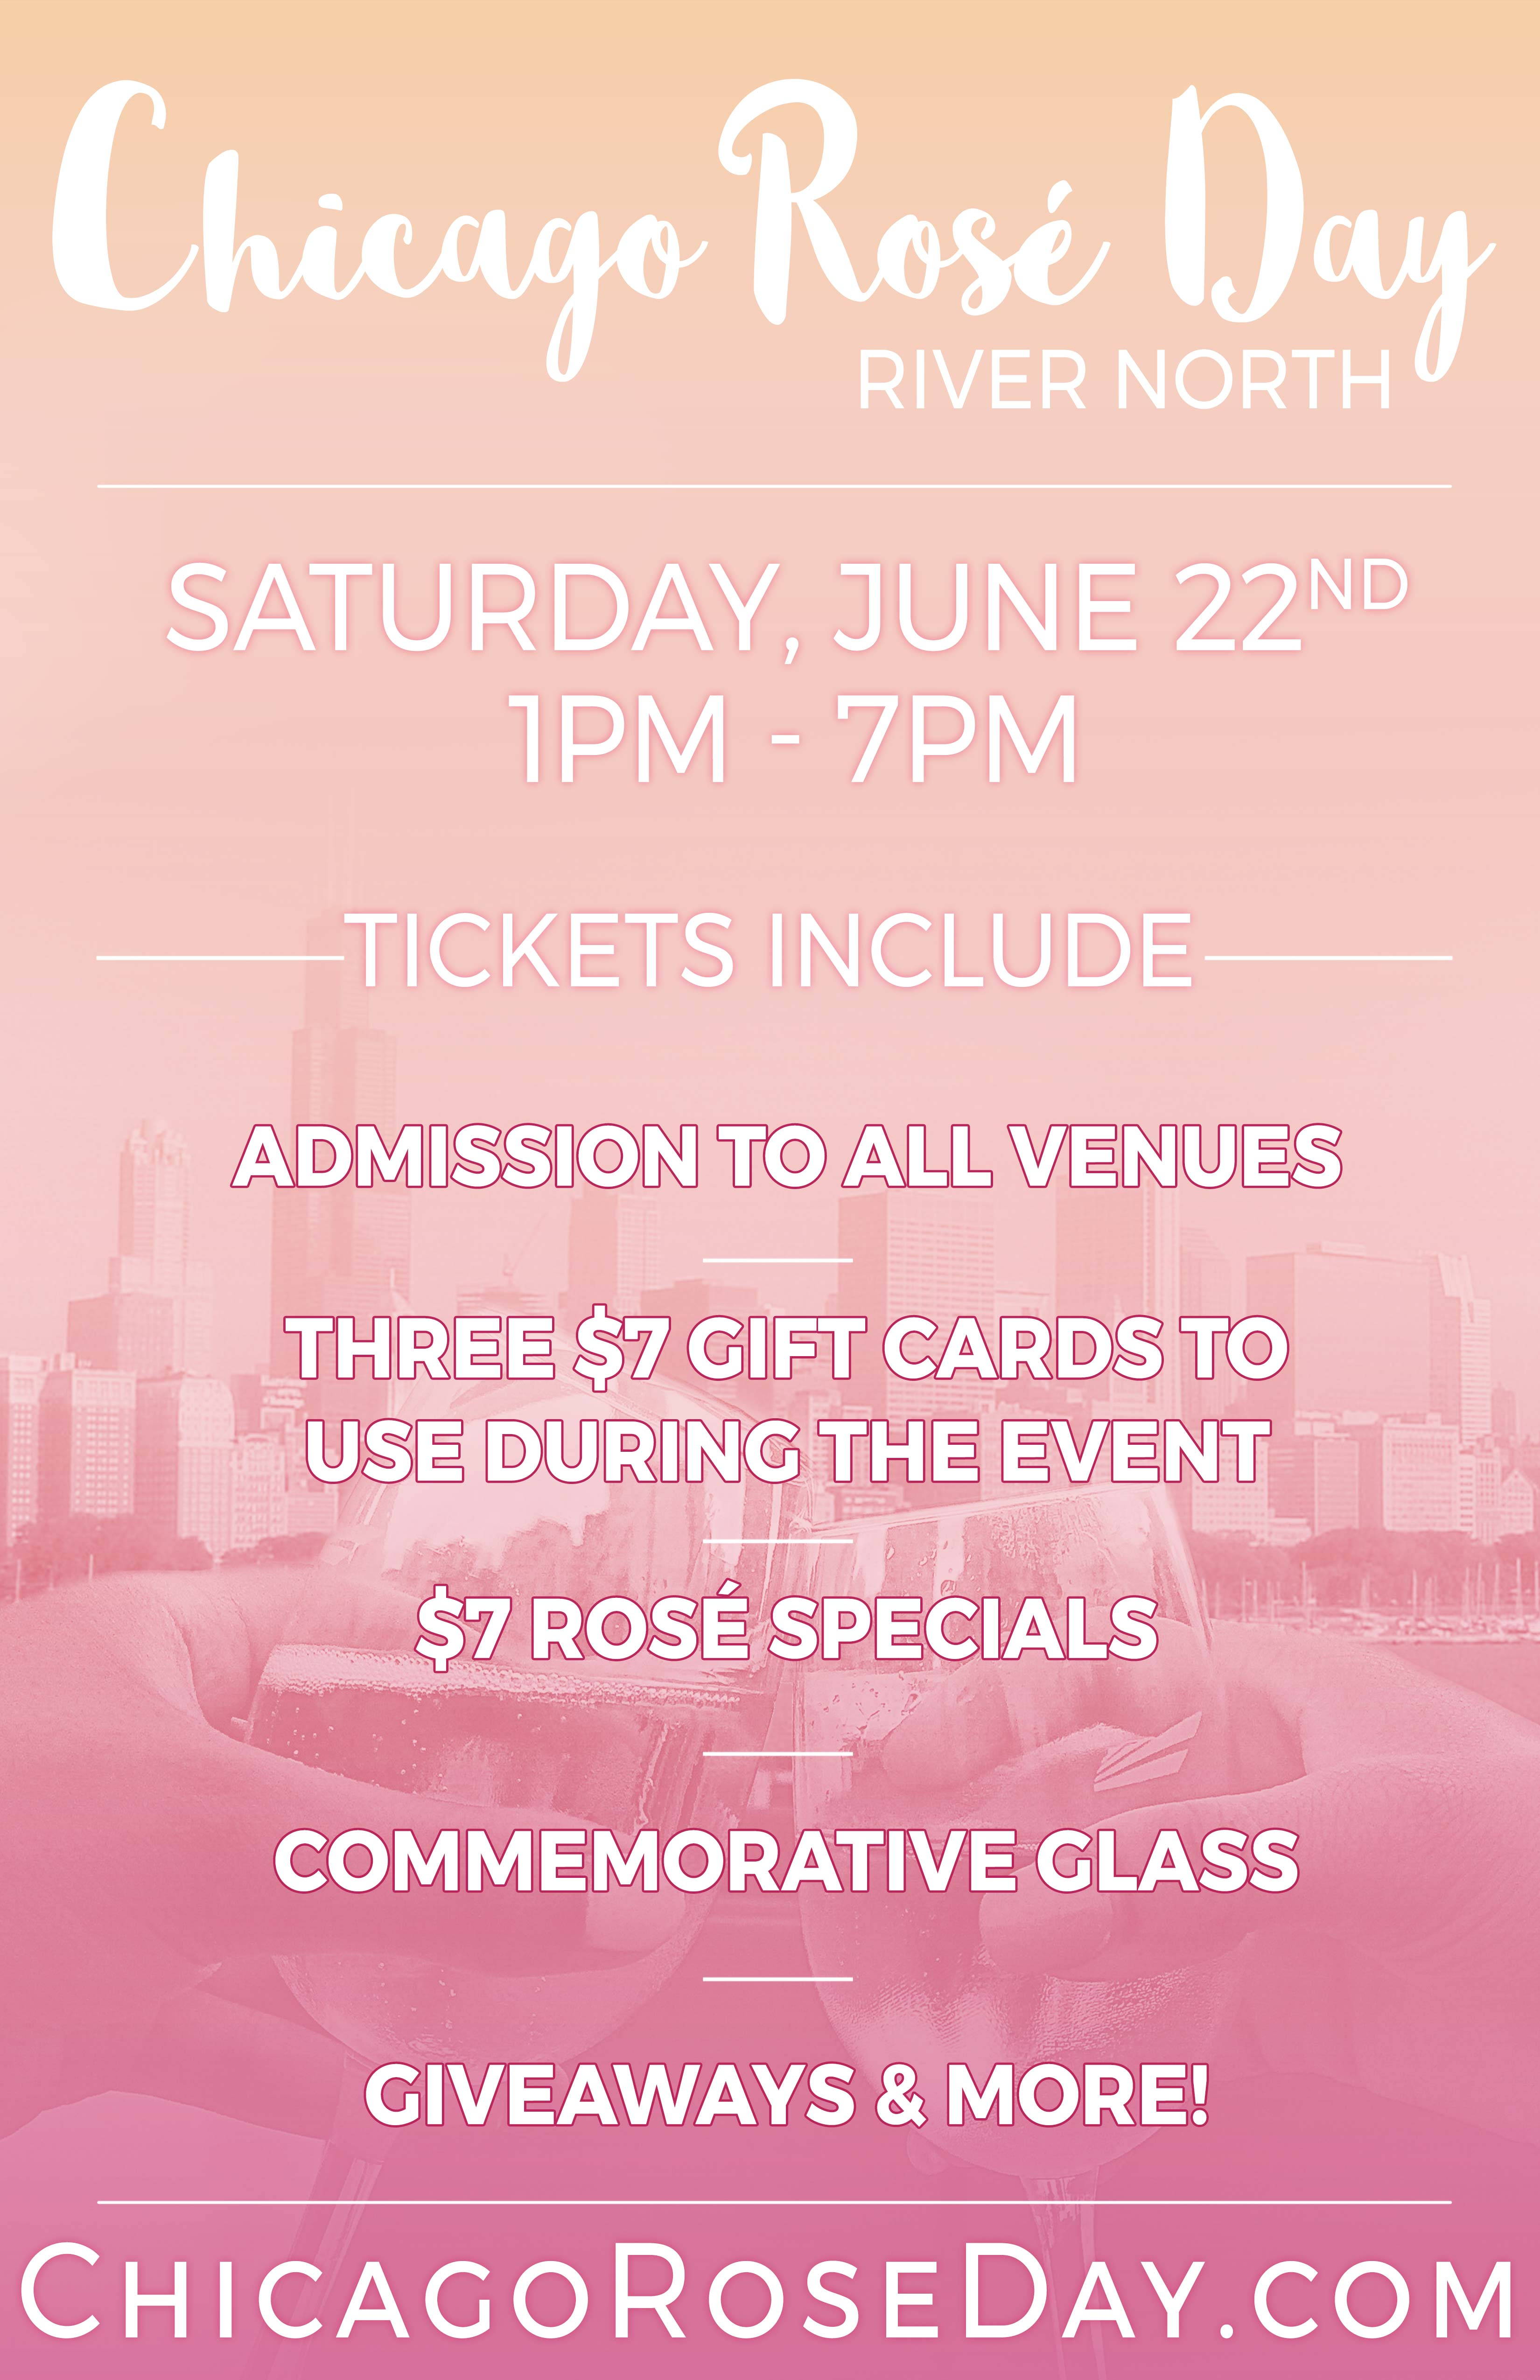 Chicago Rosé Day Party - Admission to all participating venues, Three $7 Gift Cards To Use During The Event, Access to Amazing Drink Specials Including $7 Rosé, Giveaways & More!